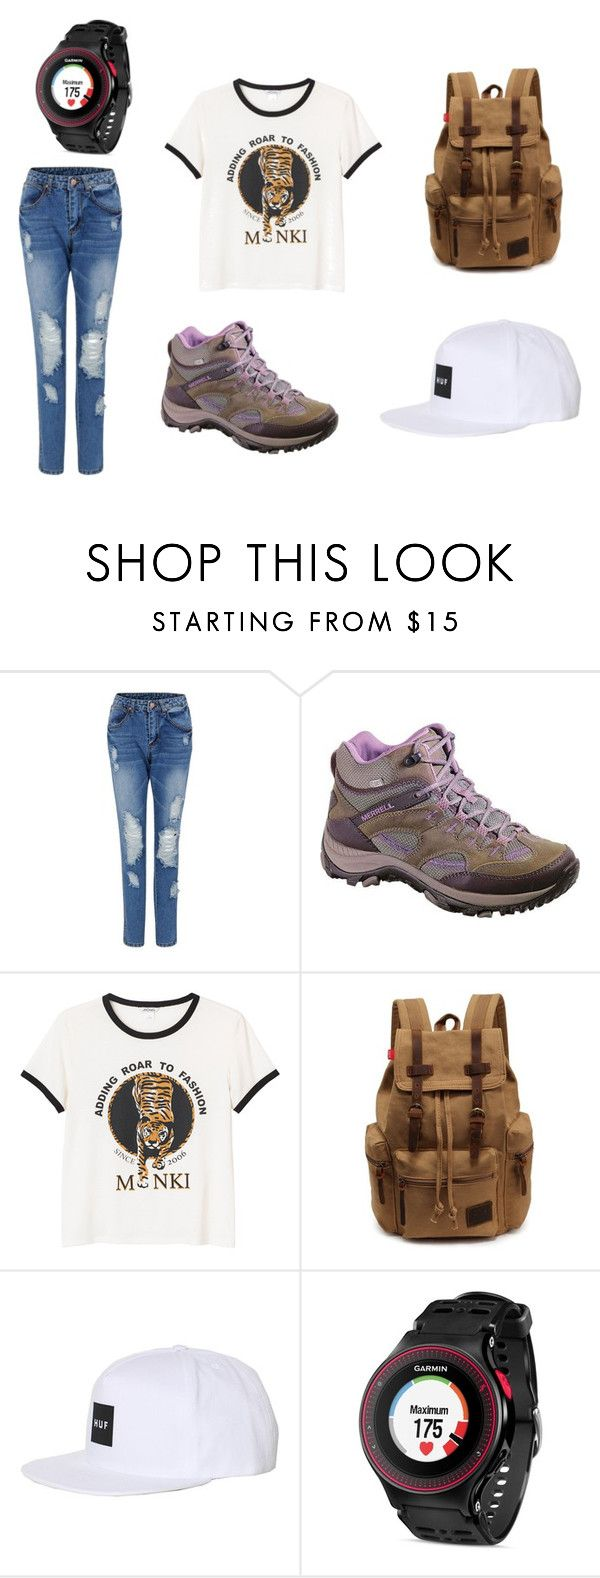 """Adventure"" by clarairawan on Polyvore featuring Merrell, Monki, HUF and Garmin"